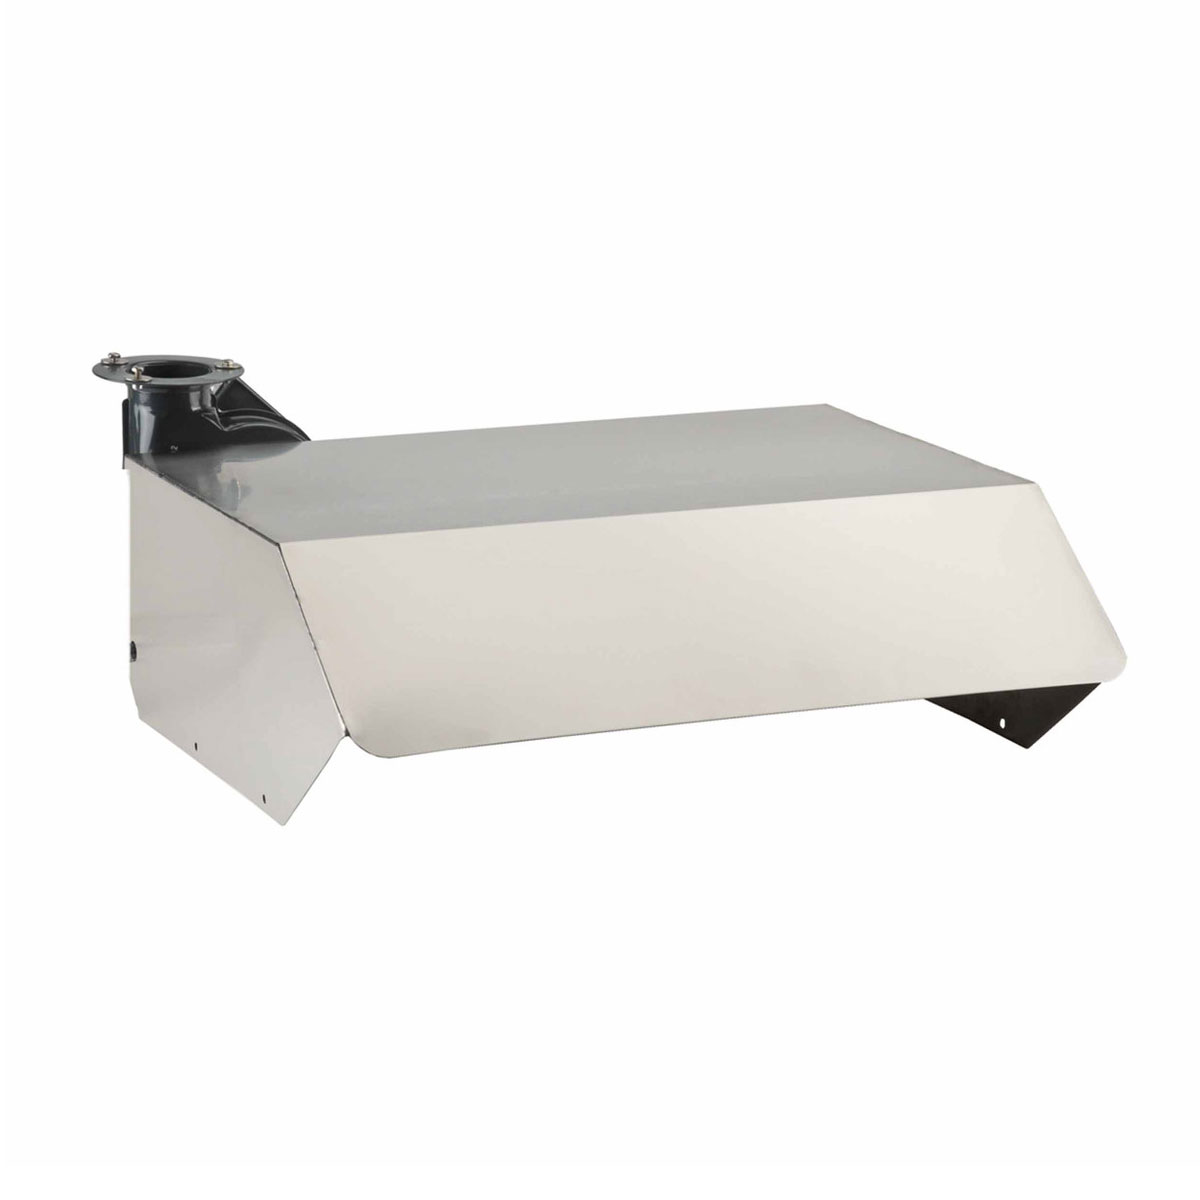 Cookshack PA001 exhaust hood